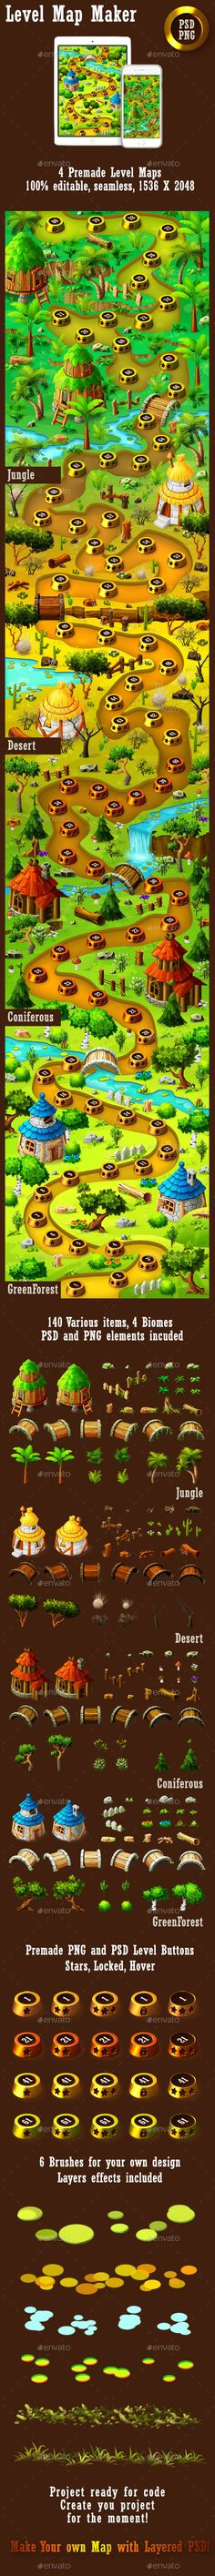 378 Best Game Assets images in 2019 | Game background, Free game